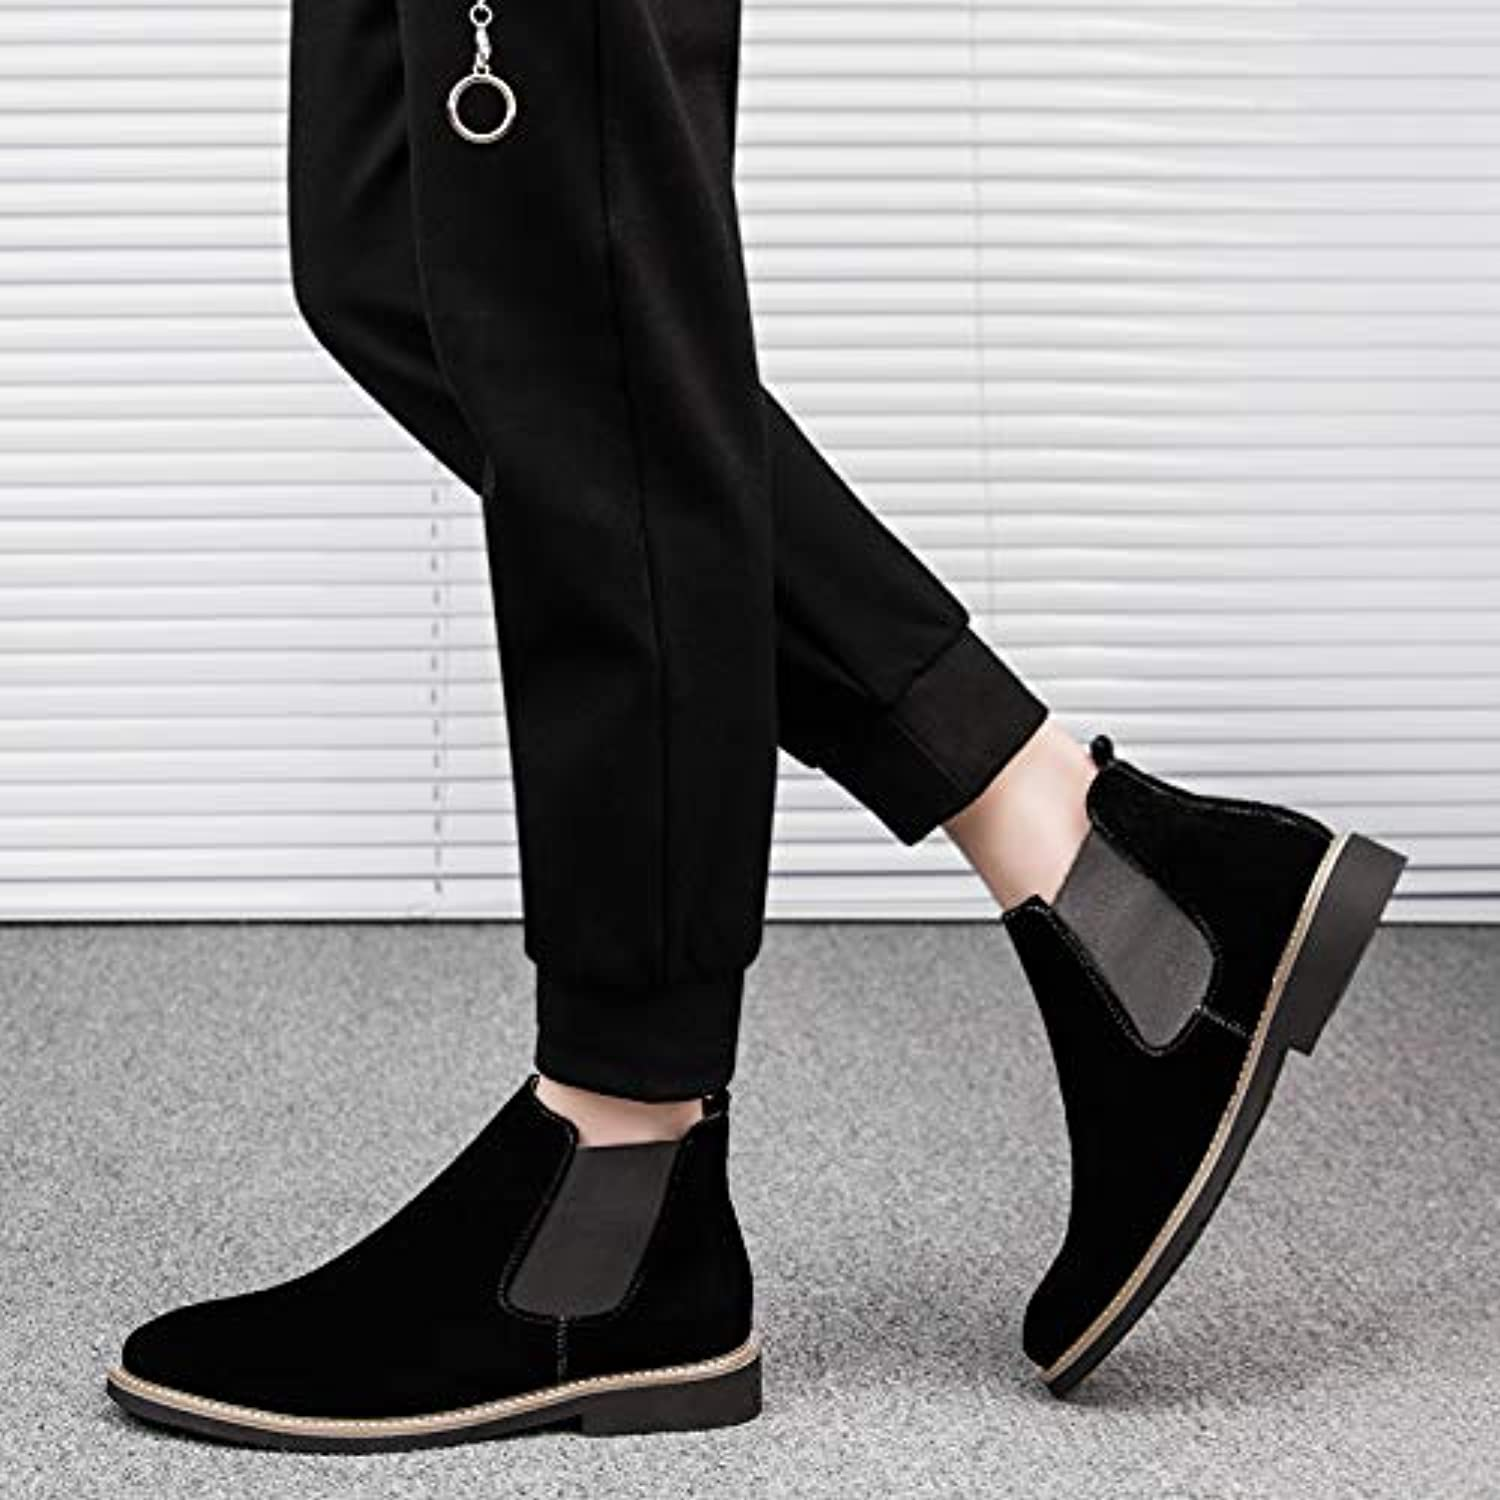 LOVDRAM Boots Men's Martin Boots Men'S Boots Chelsea Boots Men'S Autumn And Winter Sleeve Boots Casual High Men'S shoes